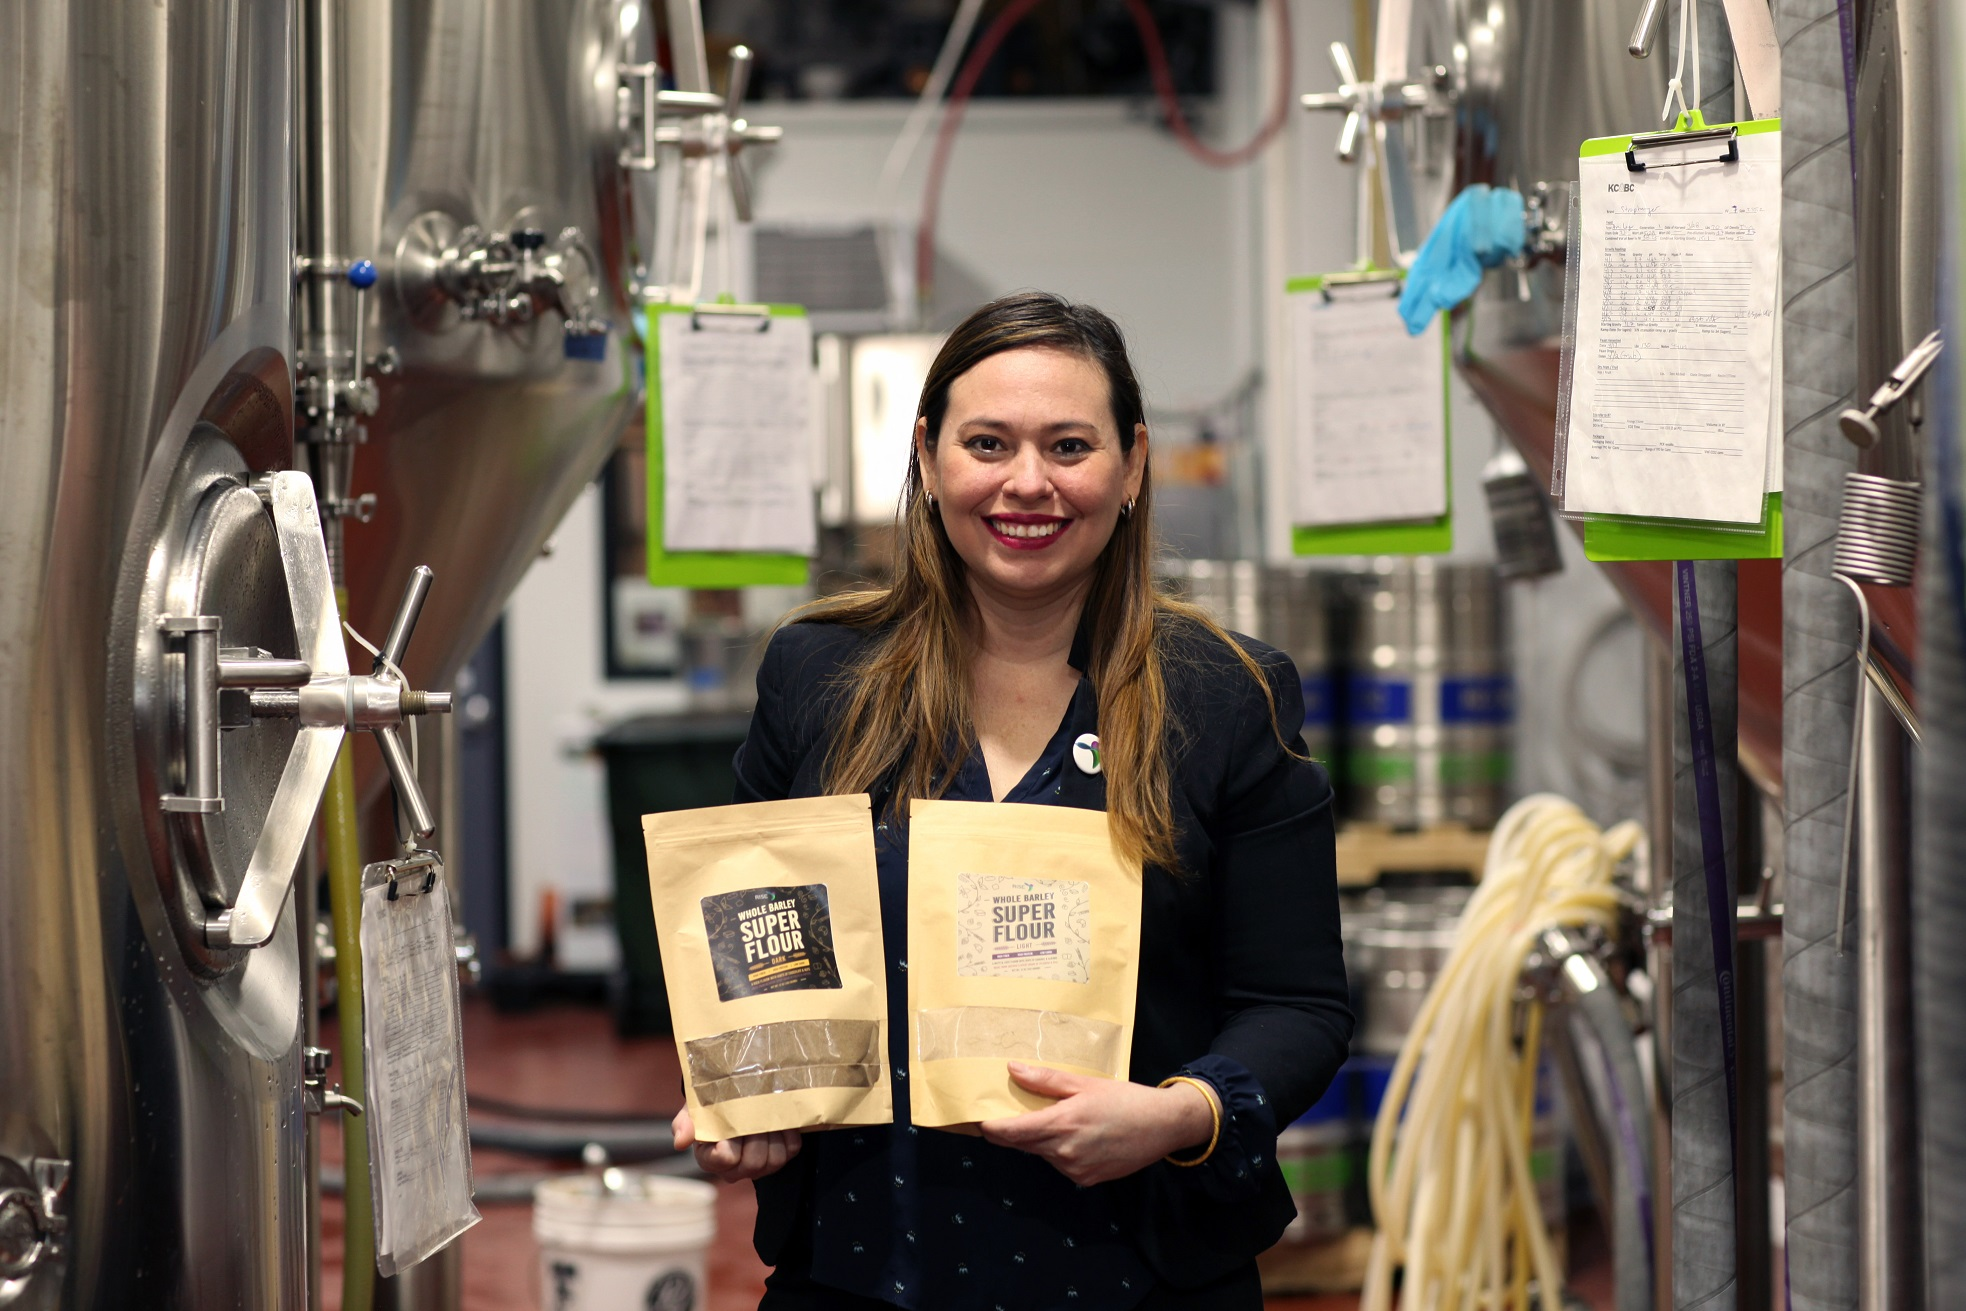 Bertha Jimenez at Kings County Brewers Collective displaying her SUPER FLOUR made with spent grain.